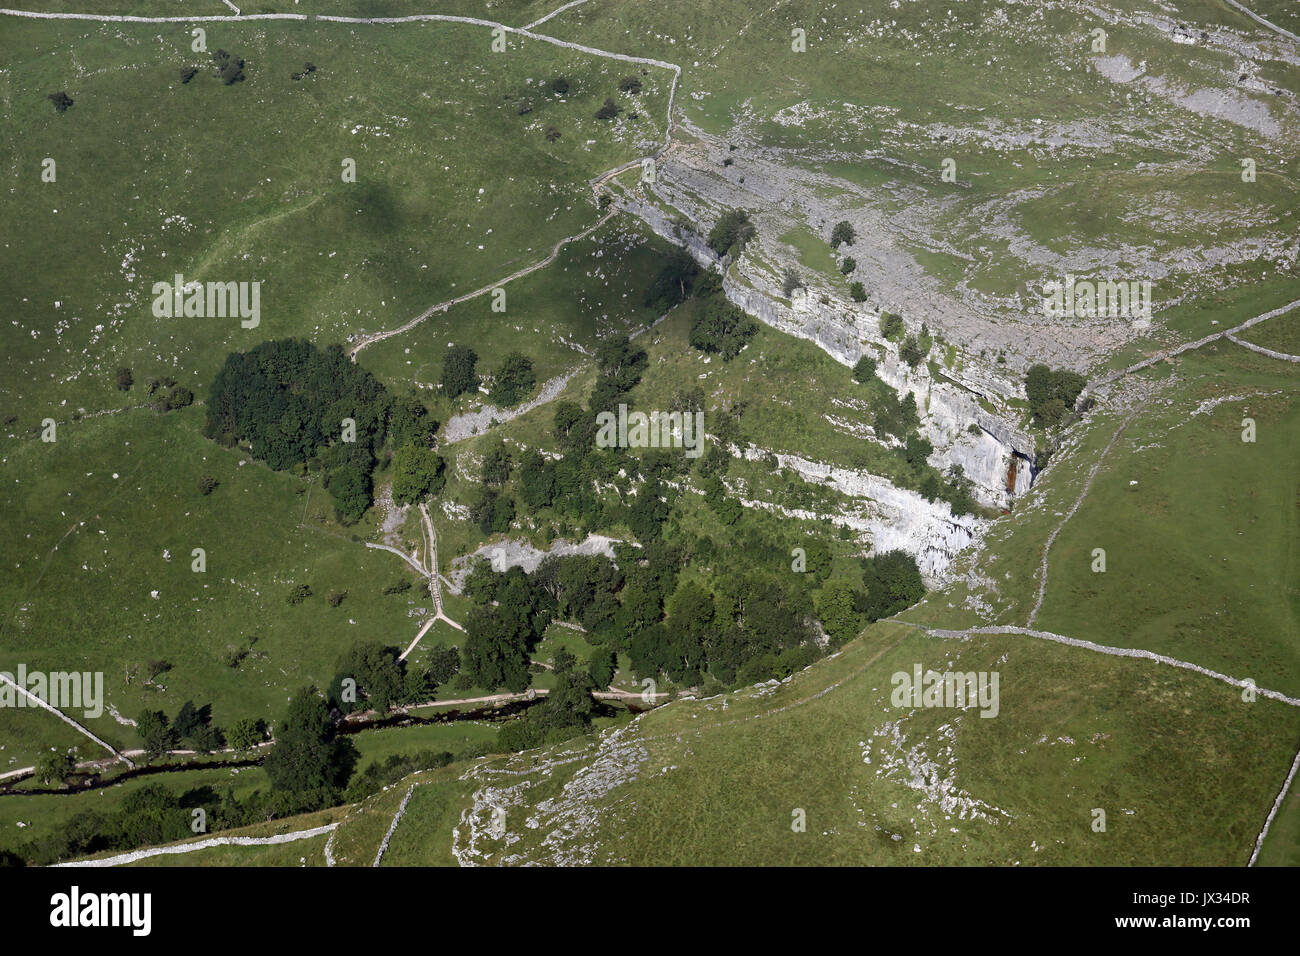 aerial view of Malham Cove, Yorkshire Dales, UK - Stock Image